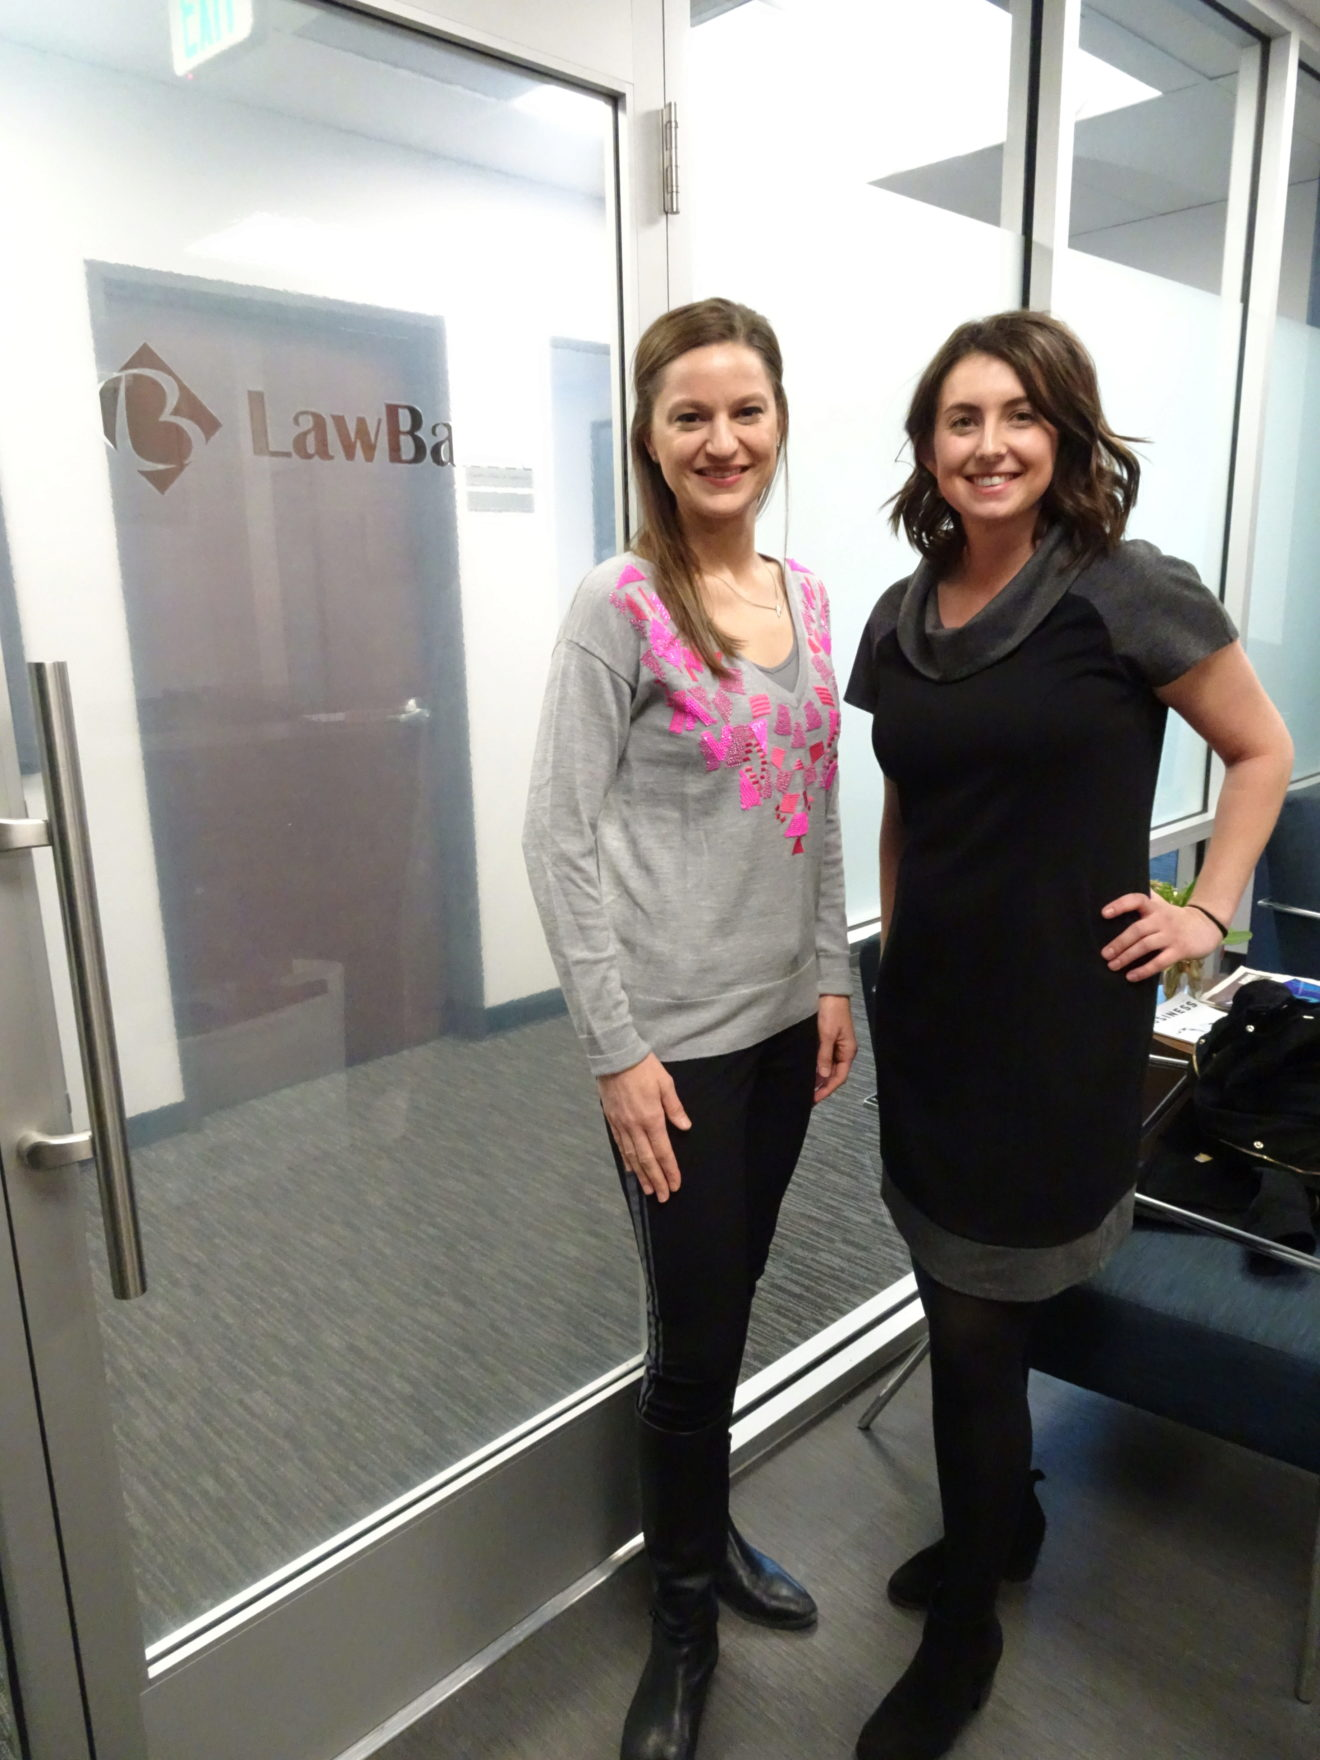 Photo of team members Heather and Megan standing at LawBank